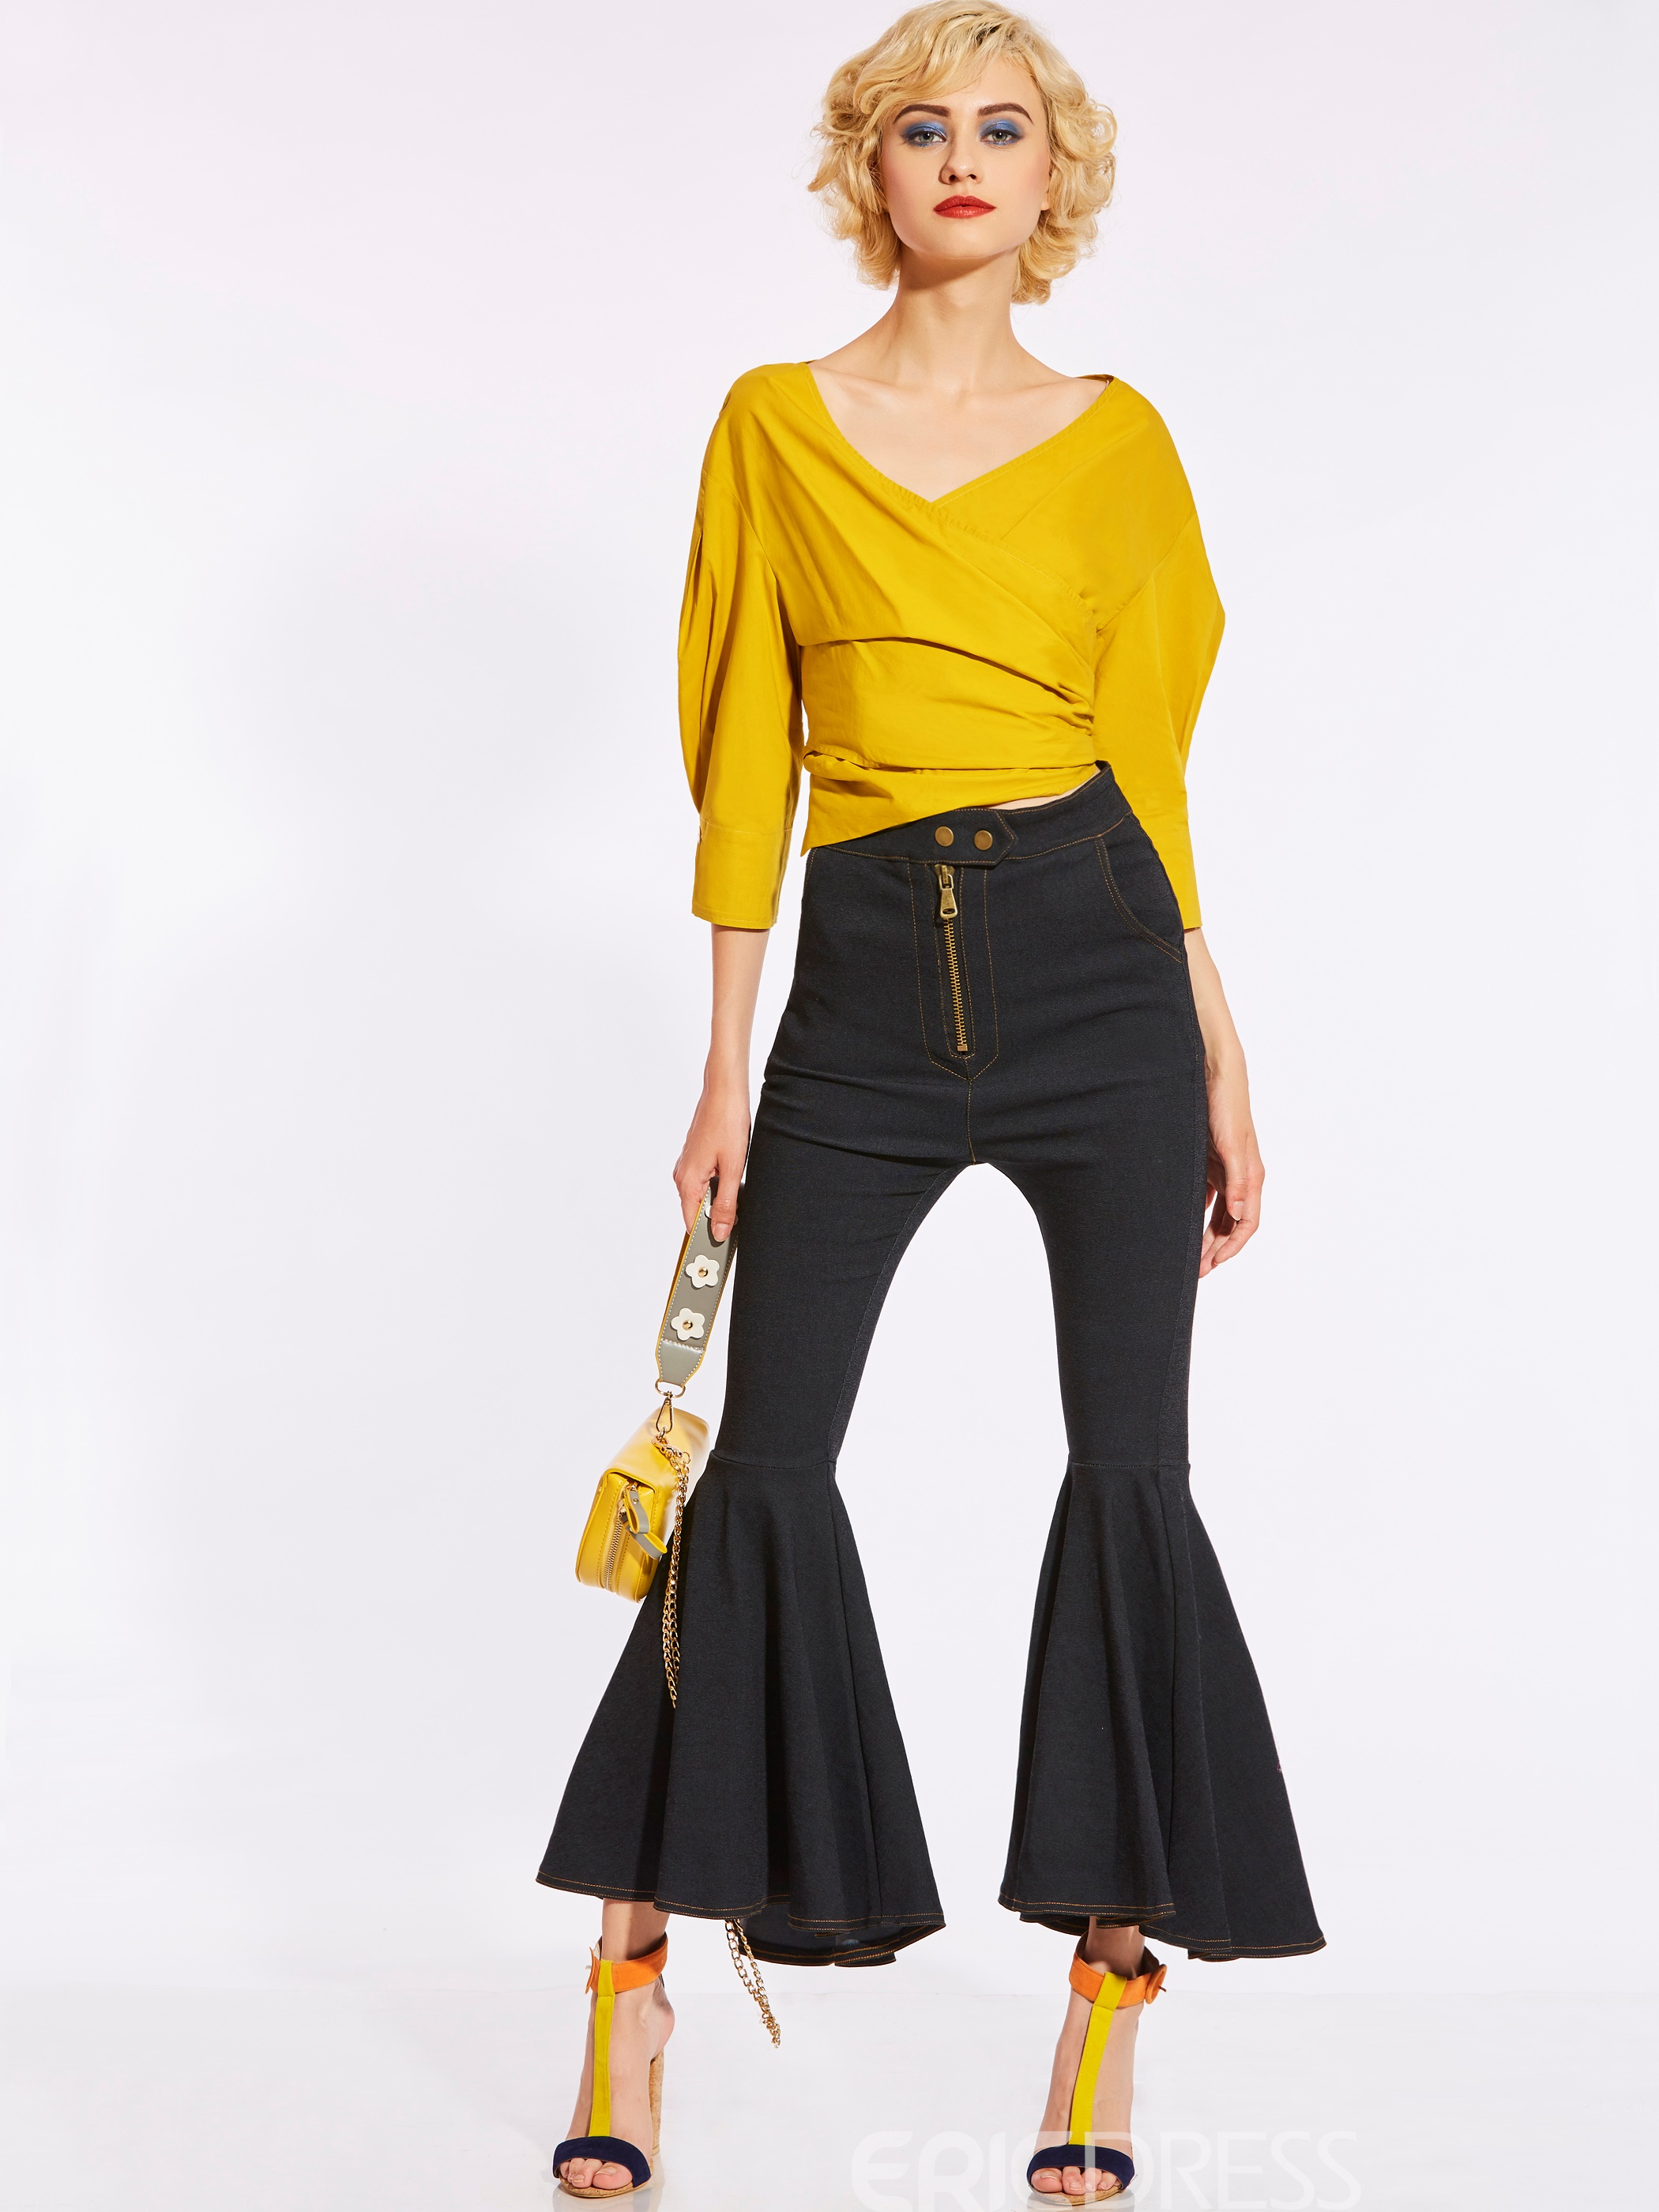 Slim High-Waist Full Length Women's Bellbottoms